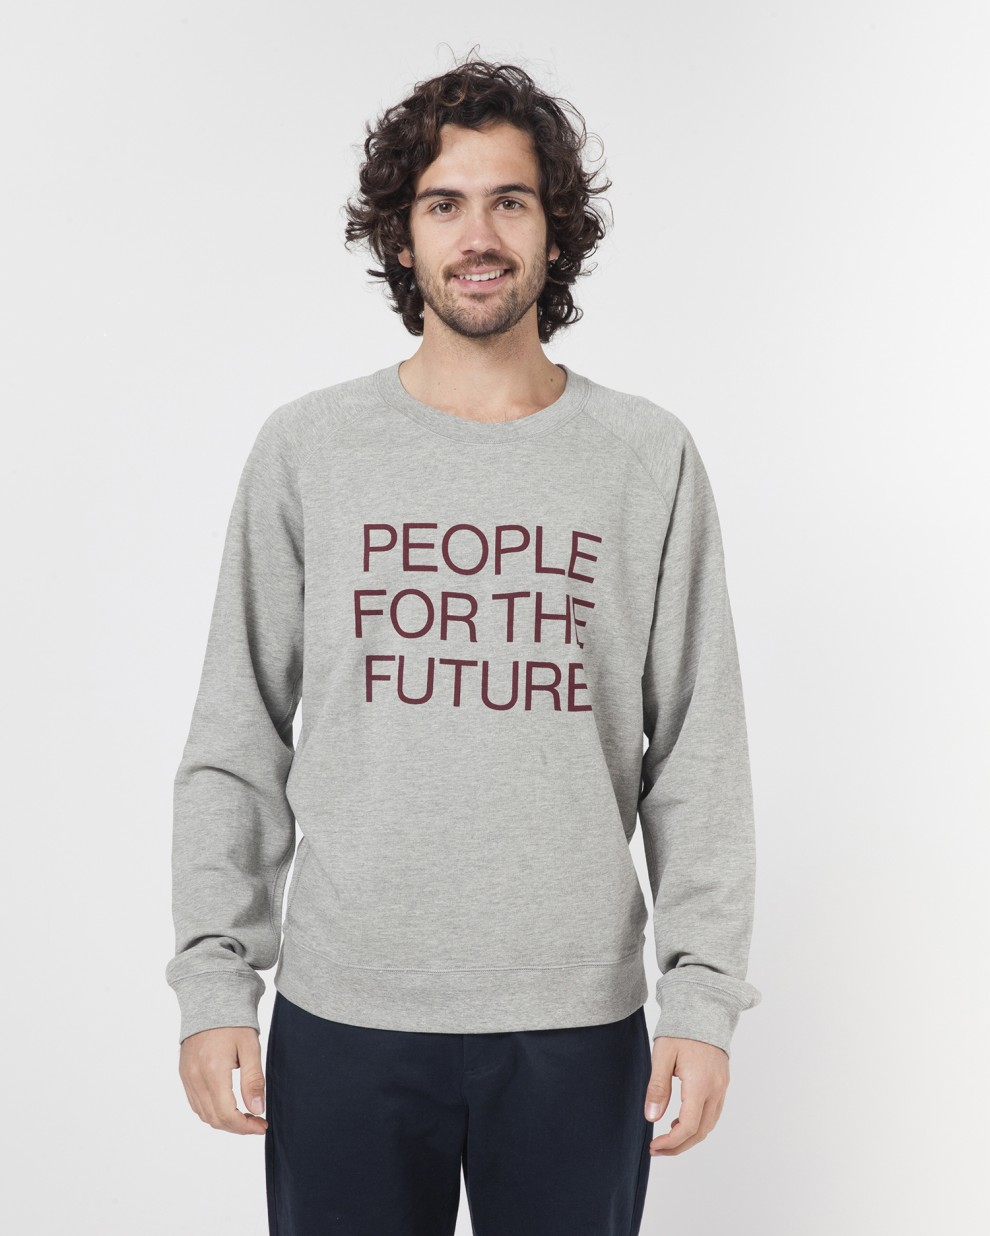 People for the future sweatshirt